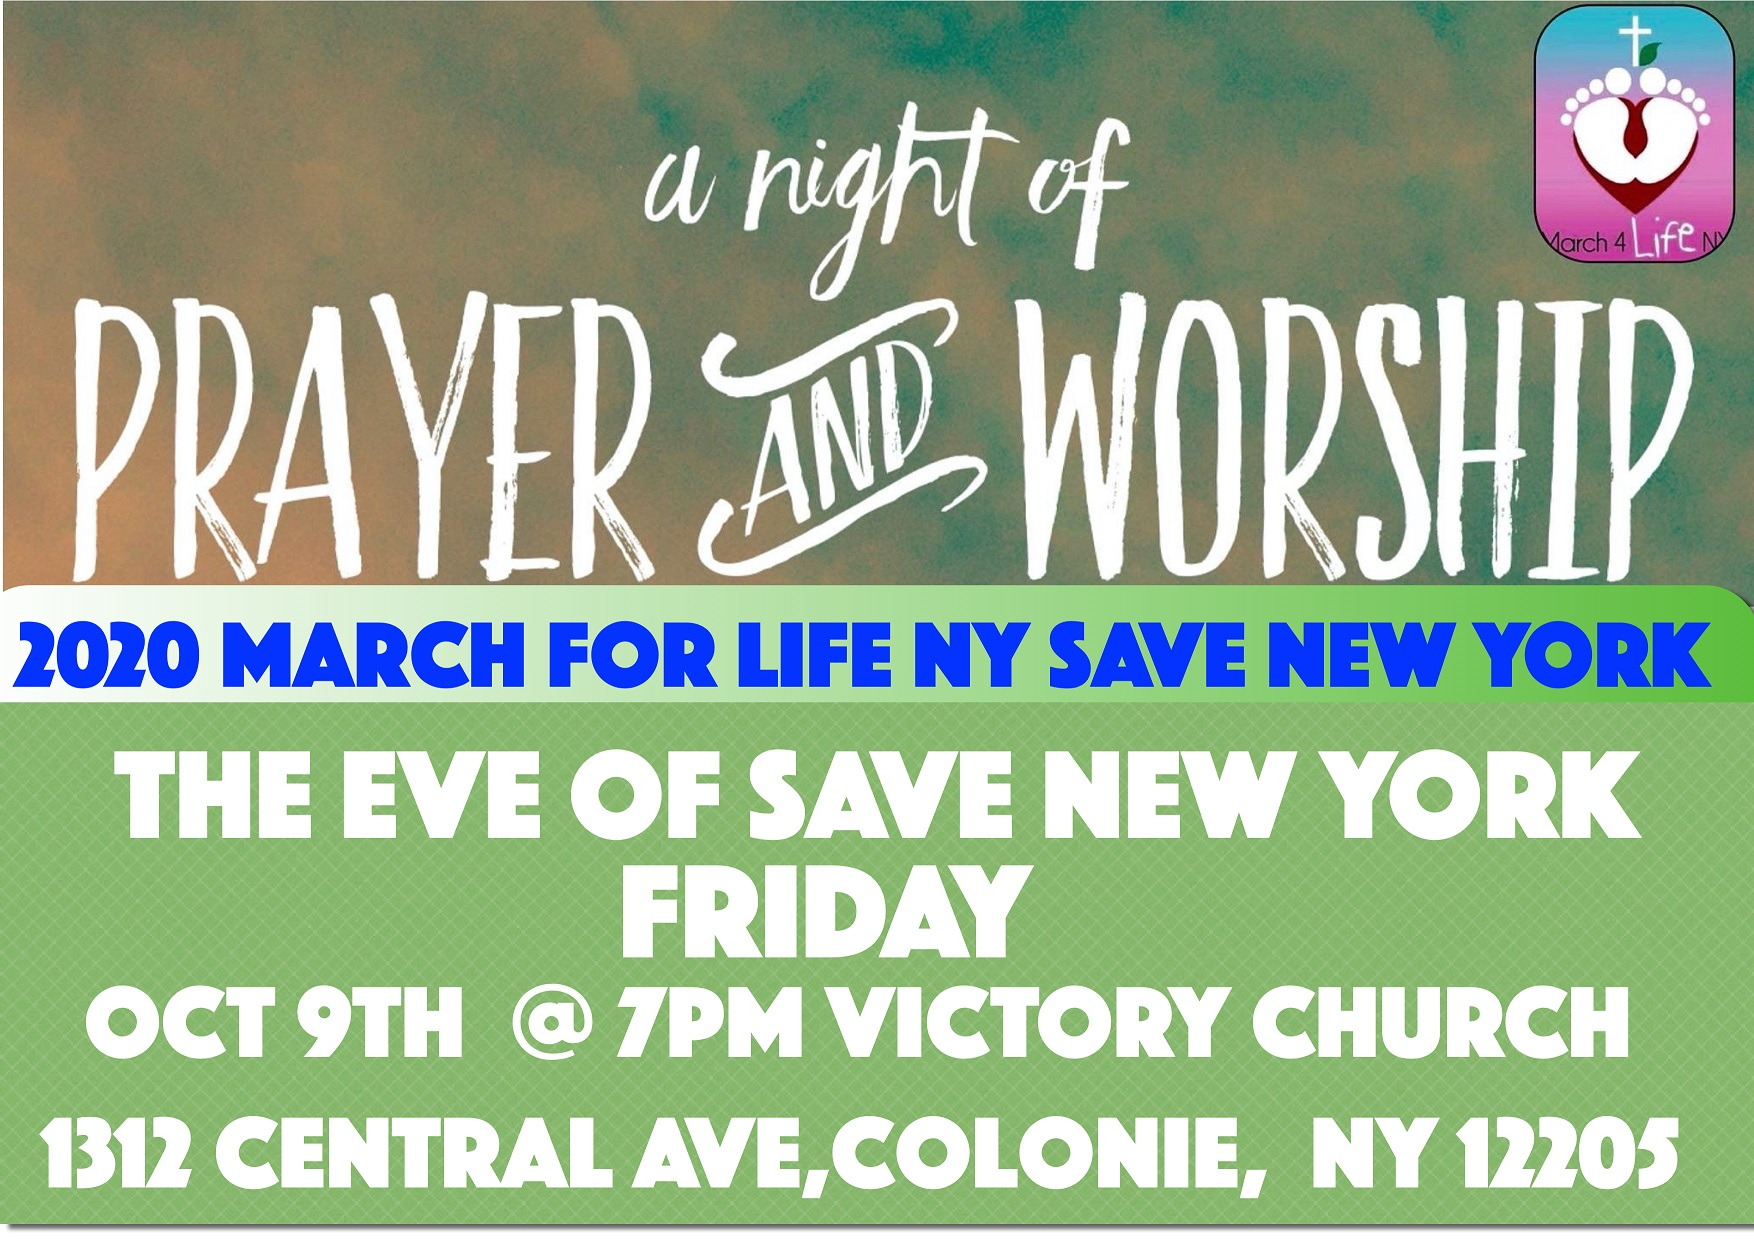 A Night of Prayer and Worship, October 9th, 7PM